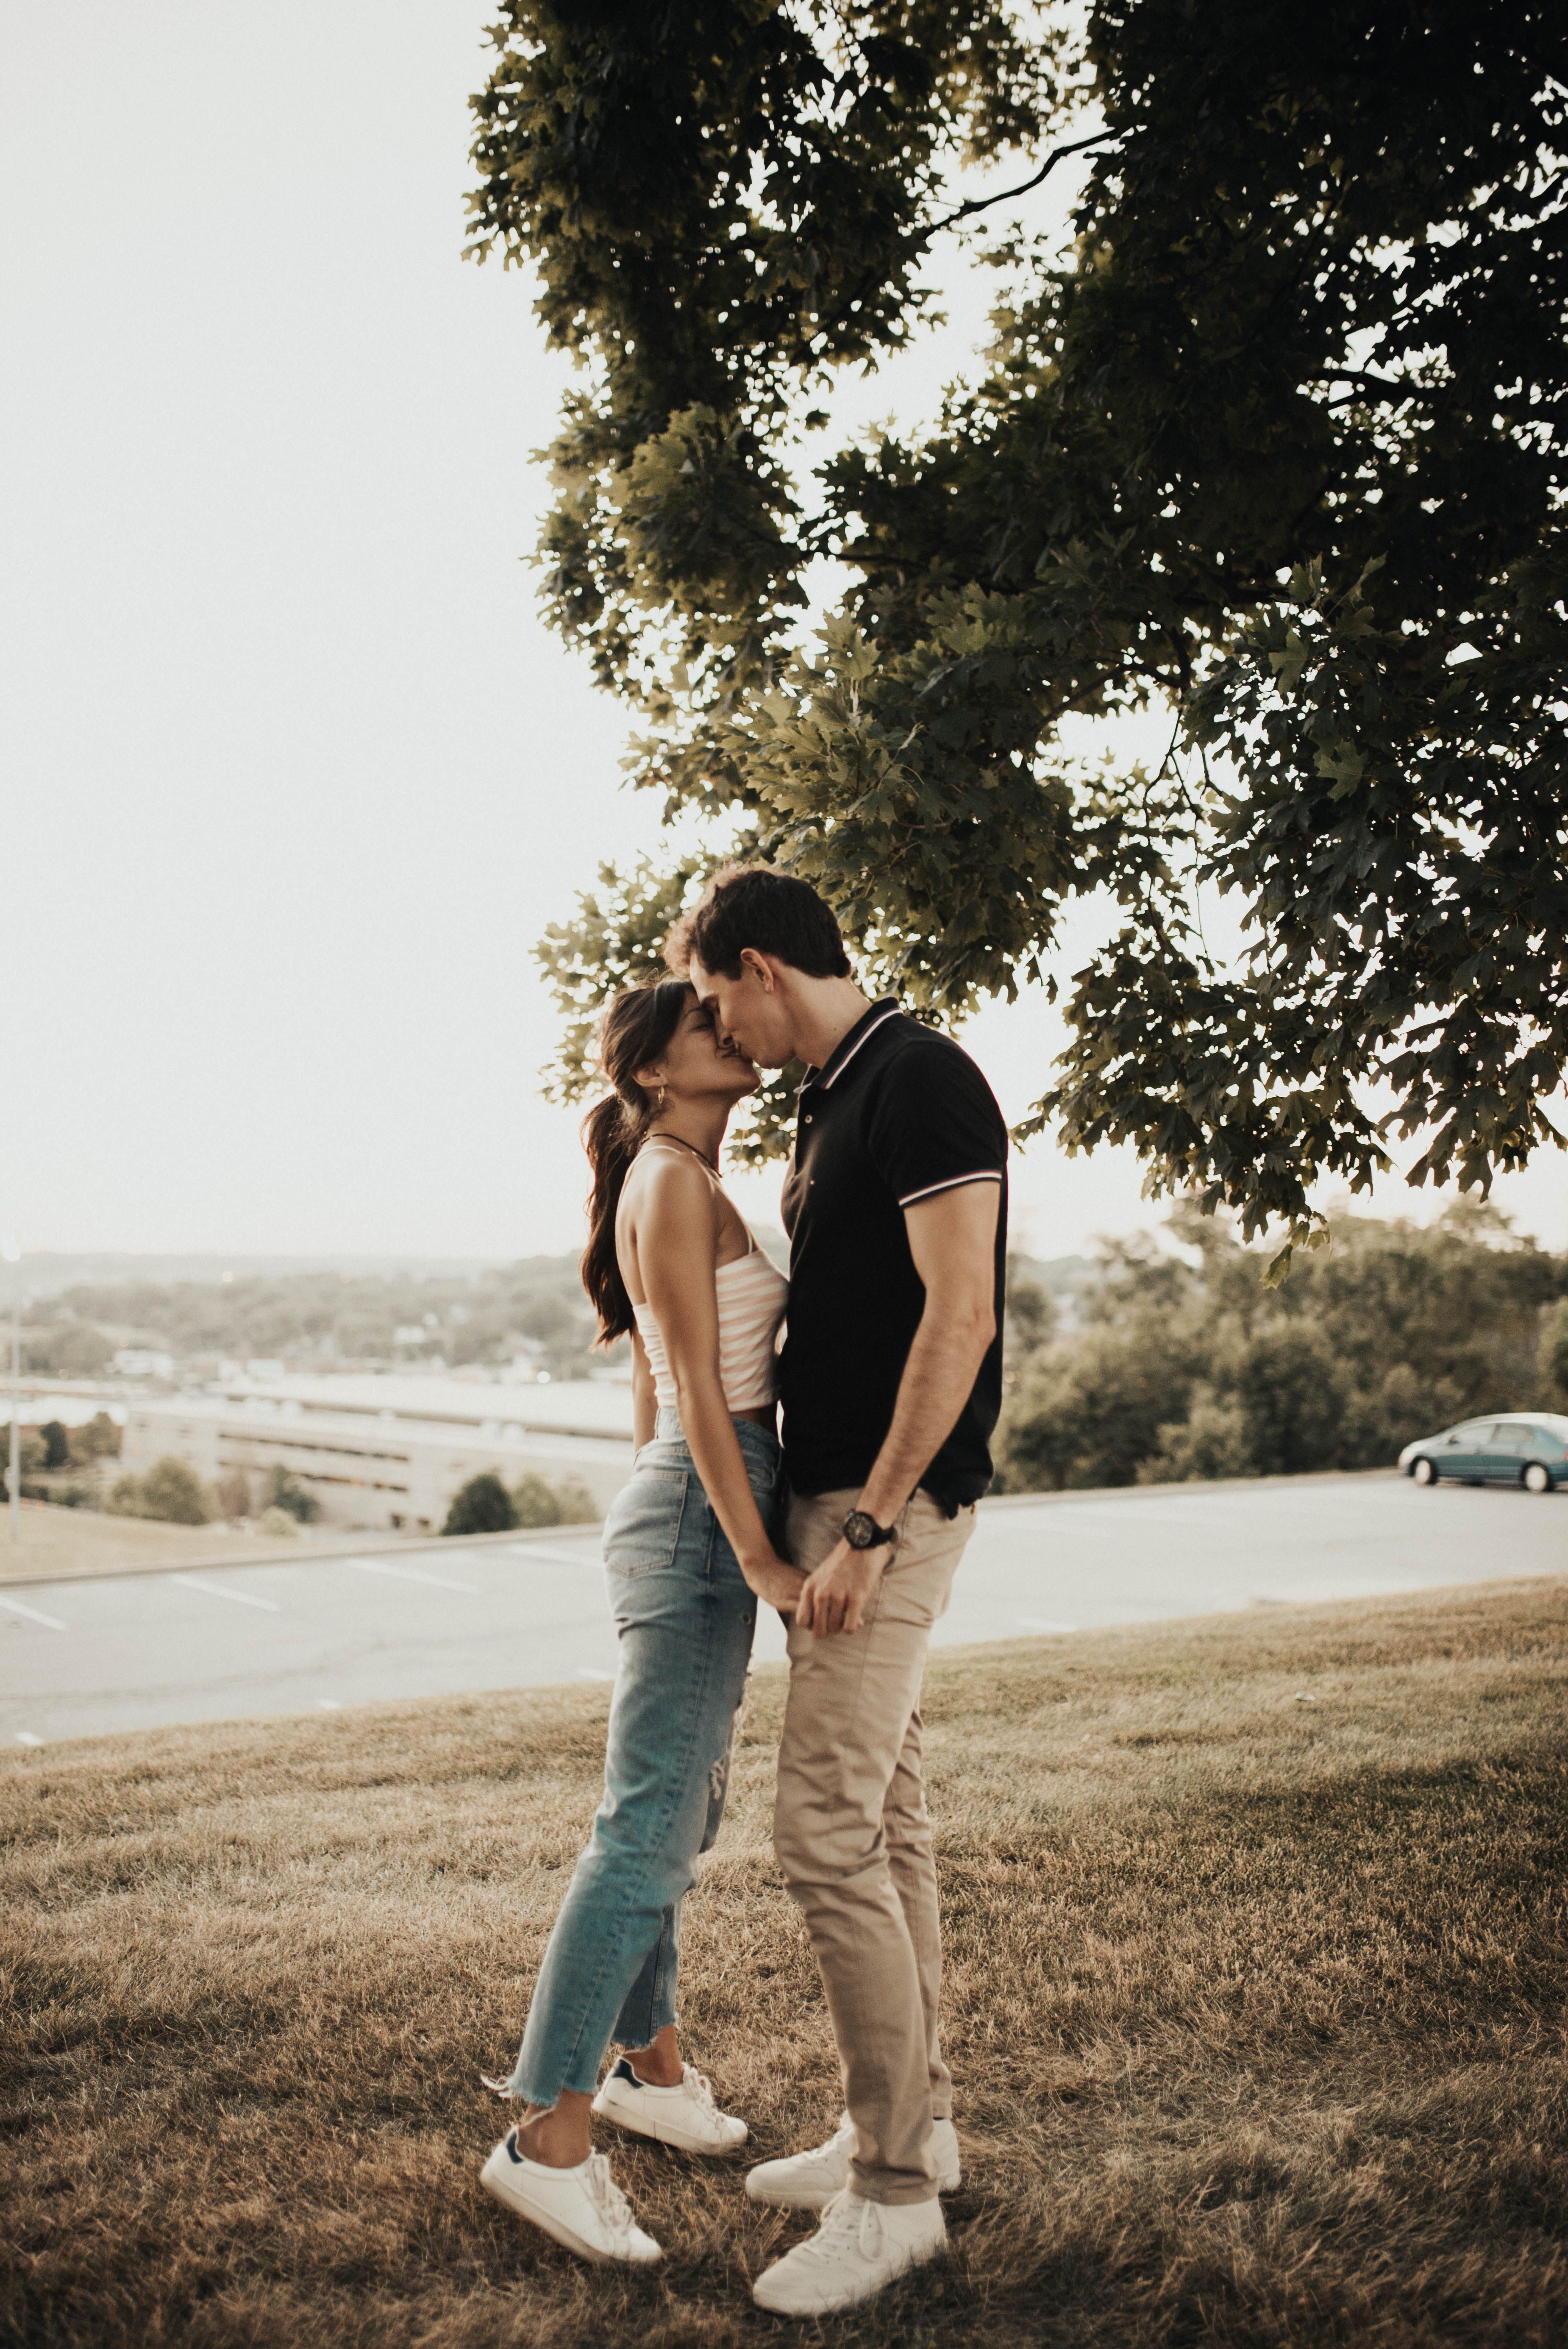 Cute And Warm Couple Session Romantic Engagement Session In Field Casual Outfits For Engage Couple Photography Poses Cute Couple Pictures Cute Couples Photos